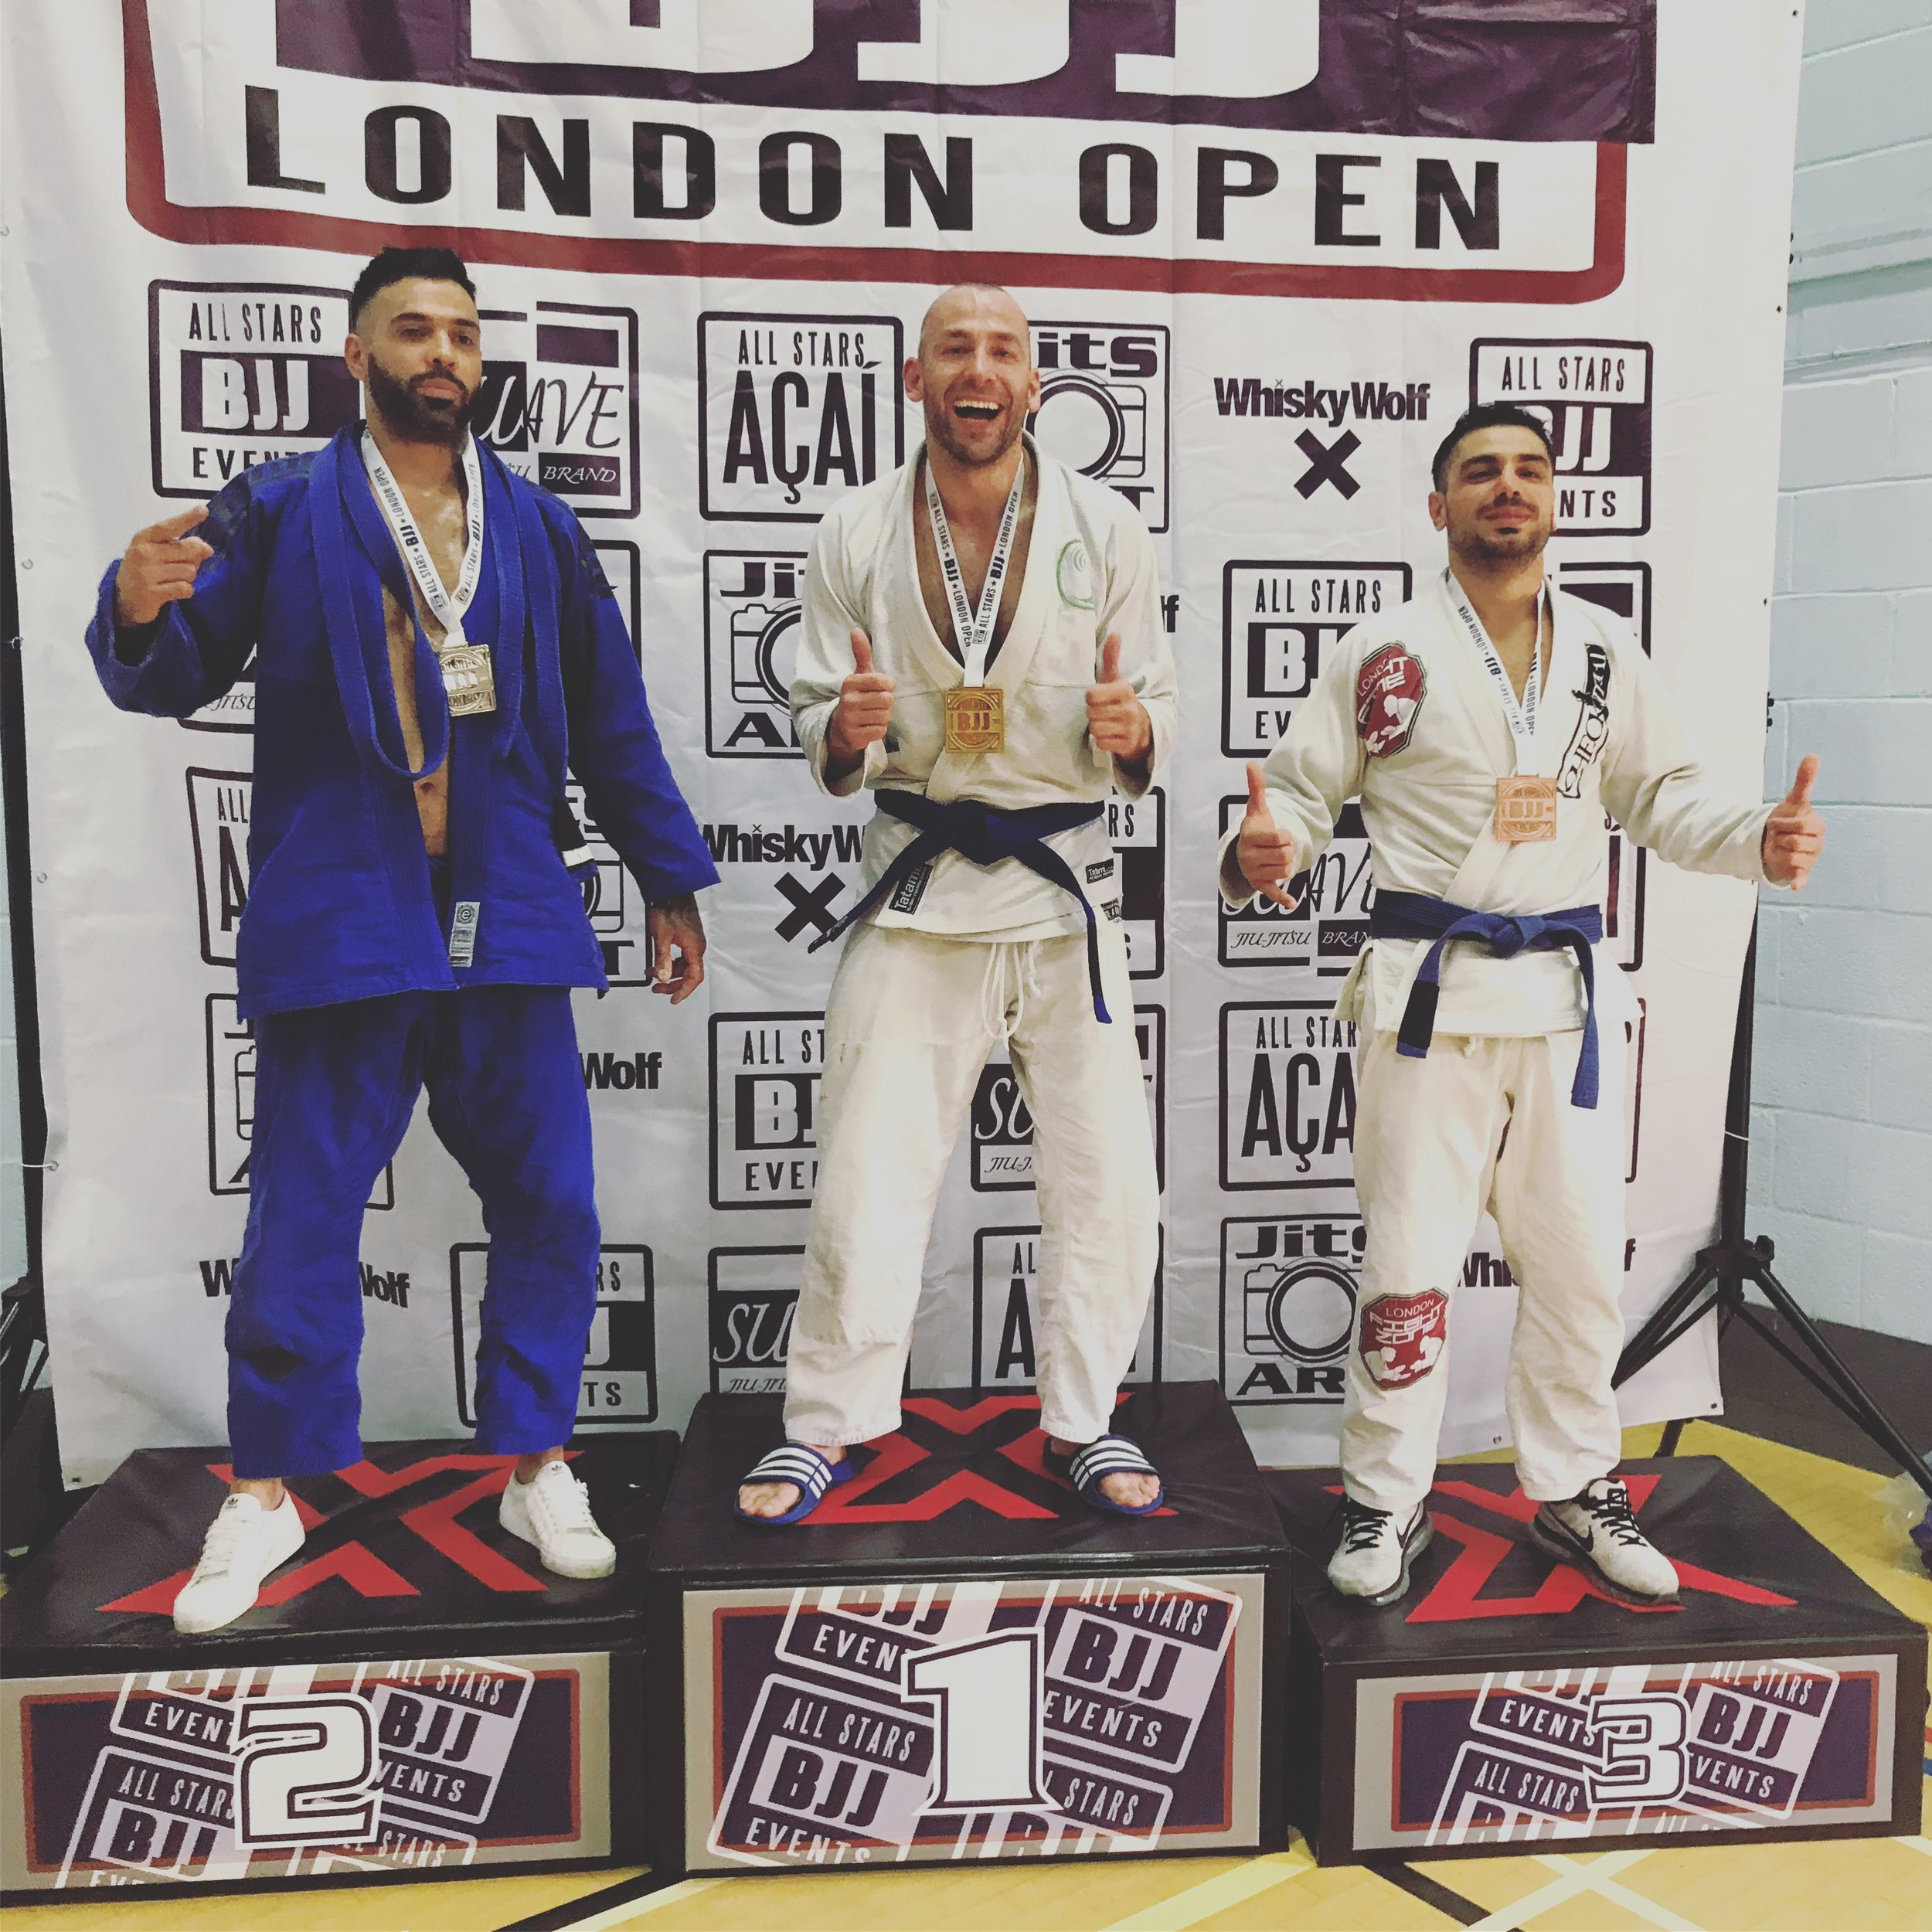 Andrius wins gold in his weight division